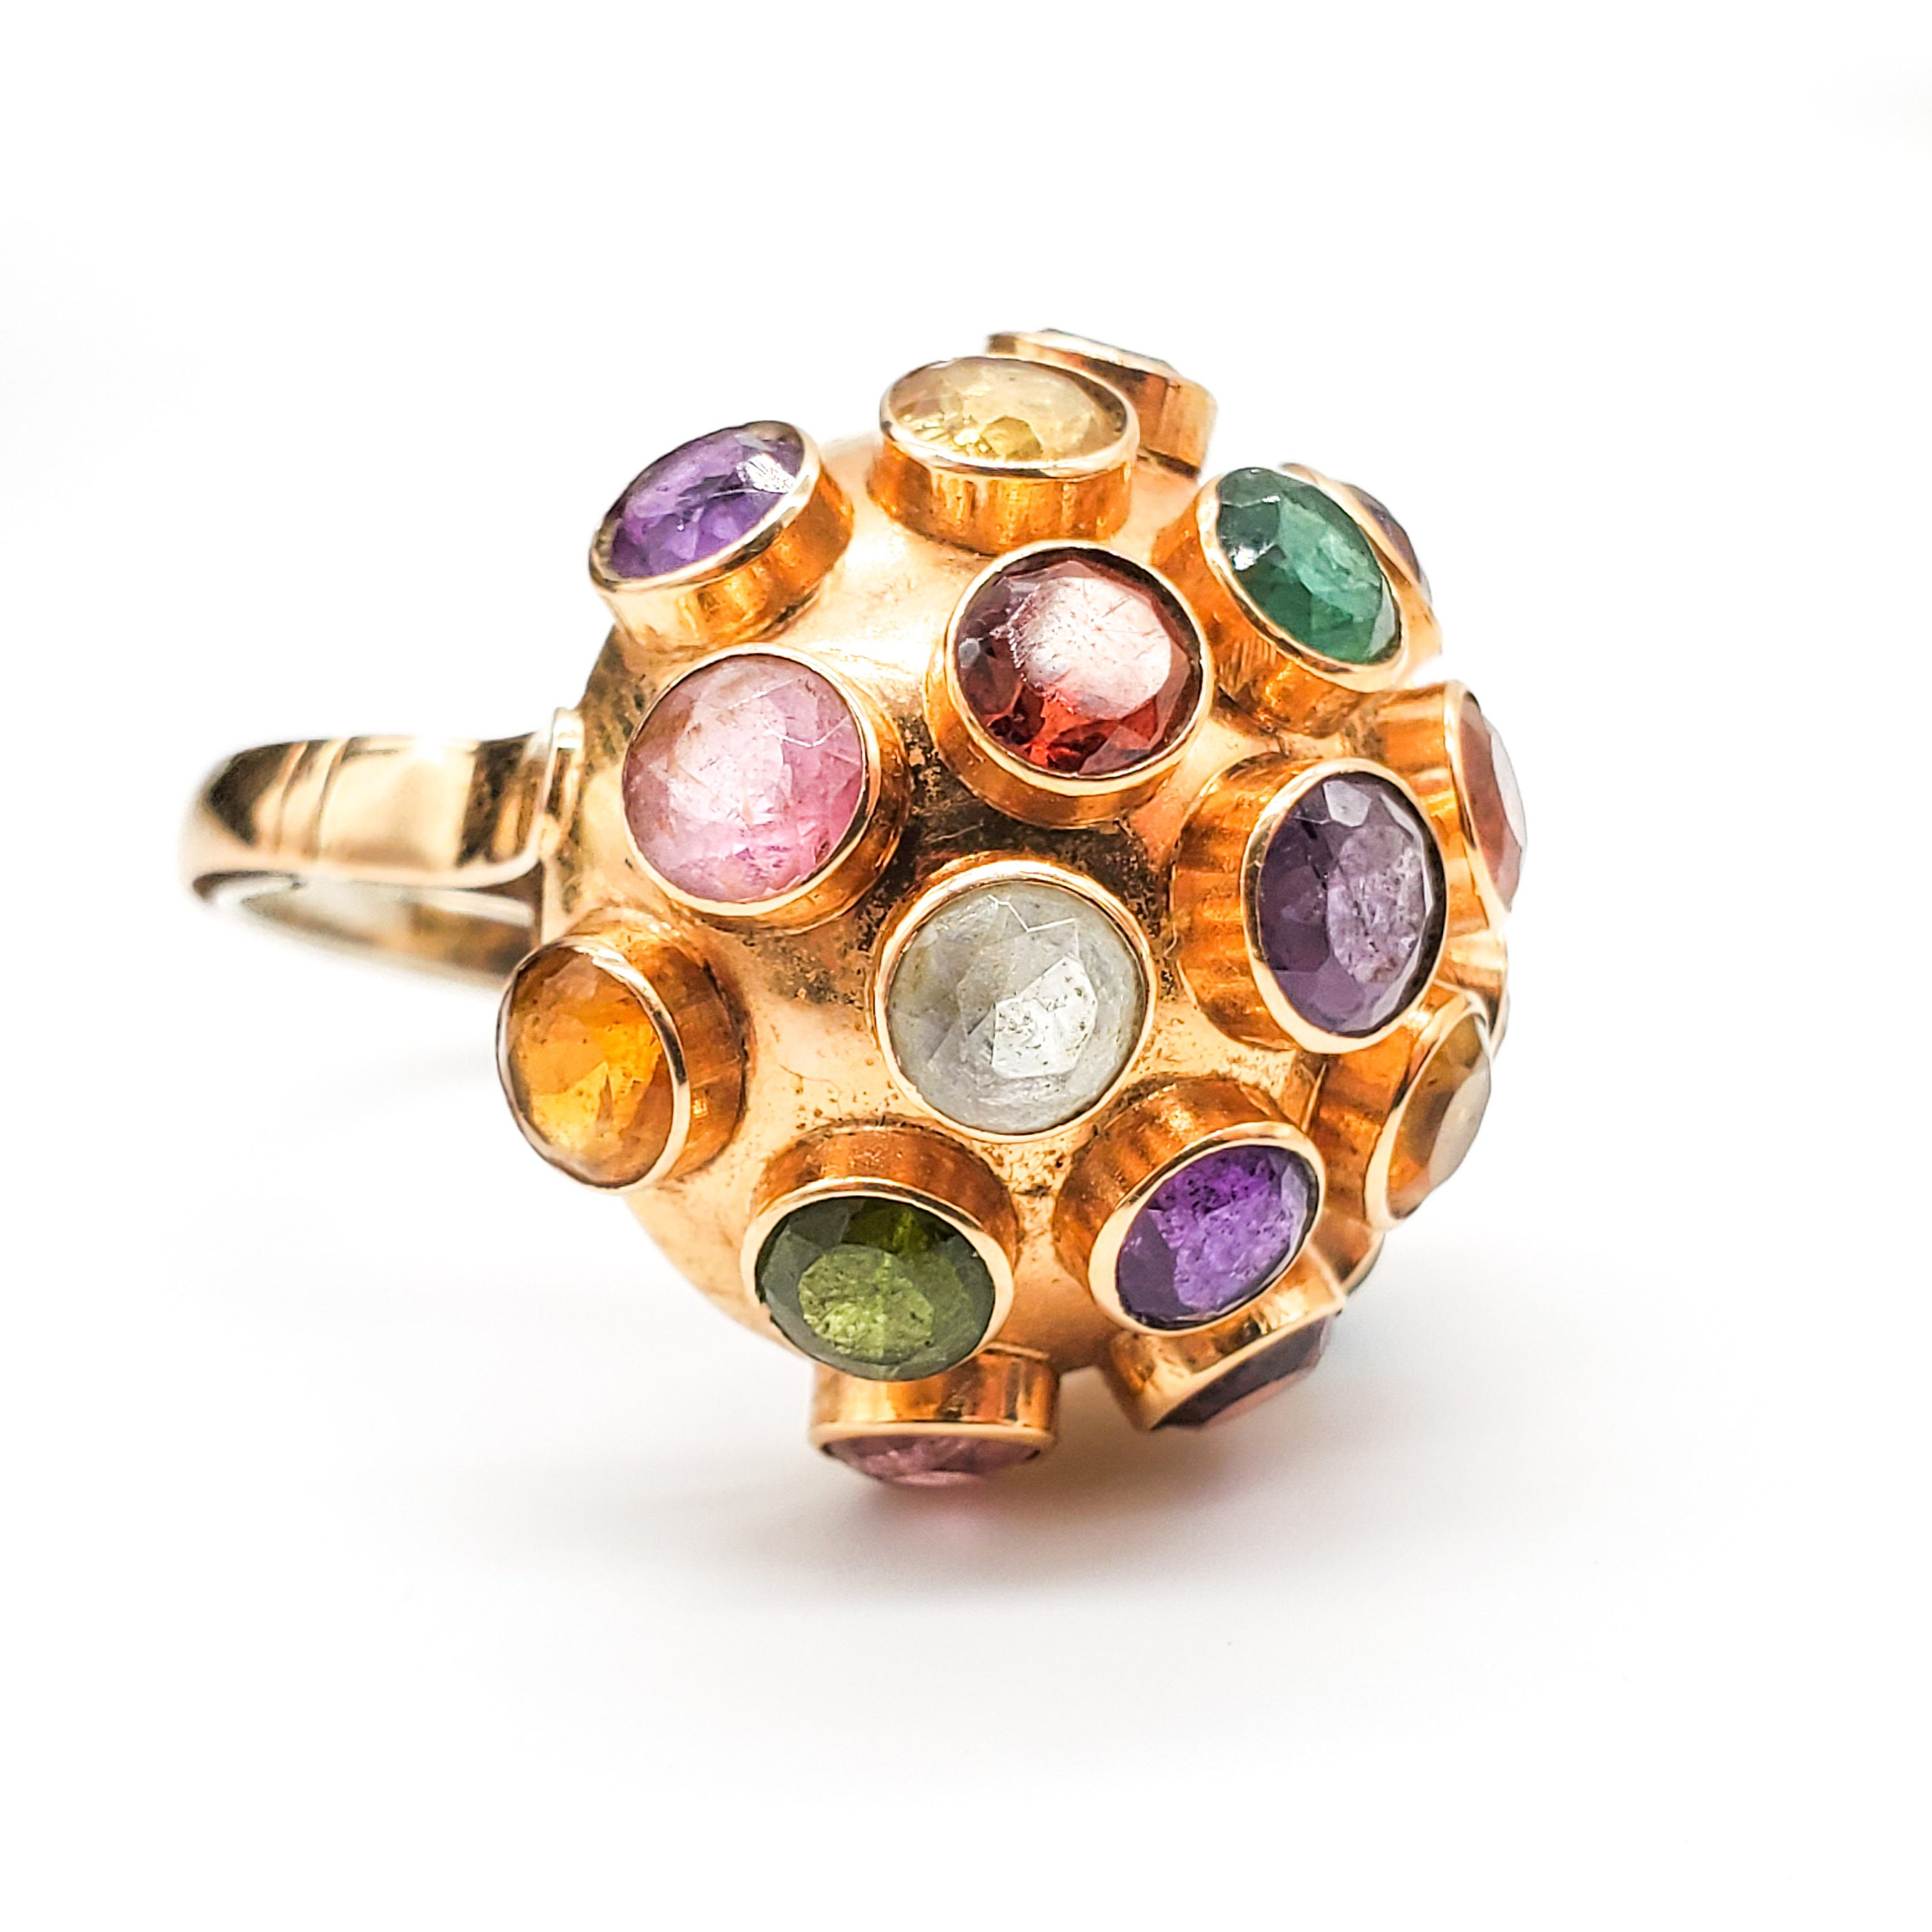 Very RARE 18K Gold H. Stern, Sputnik Cocktail Ring, Rainbow Gemstones, Mid Century Modernist Space Age Atomic, Authentic H. Stern, 1950s for sale